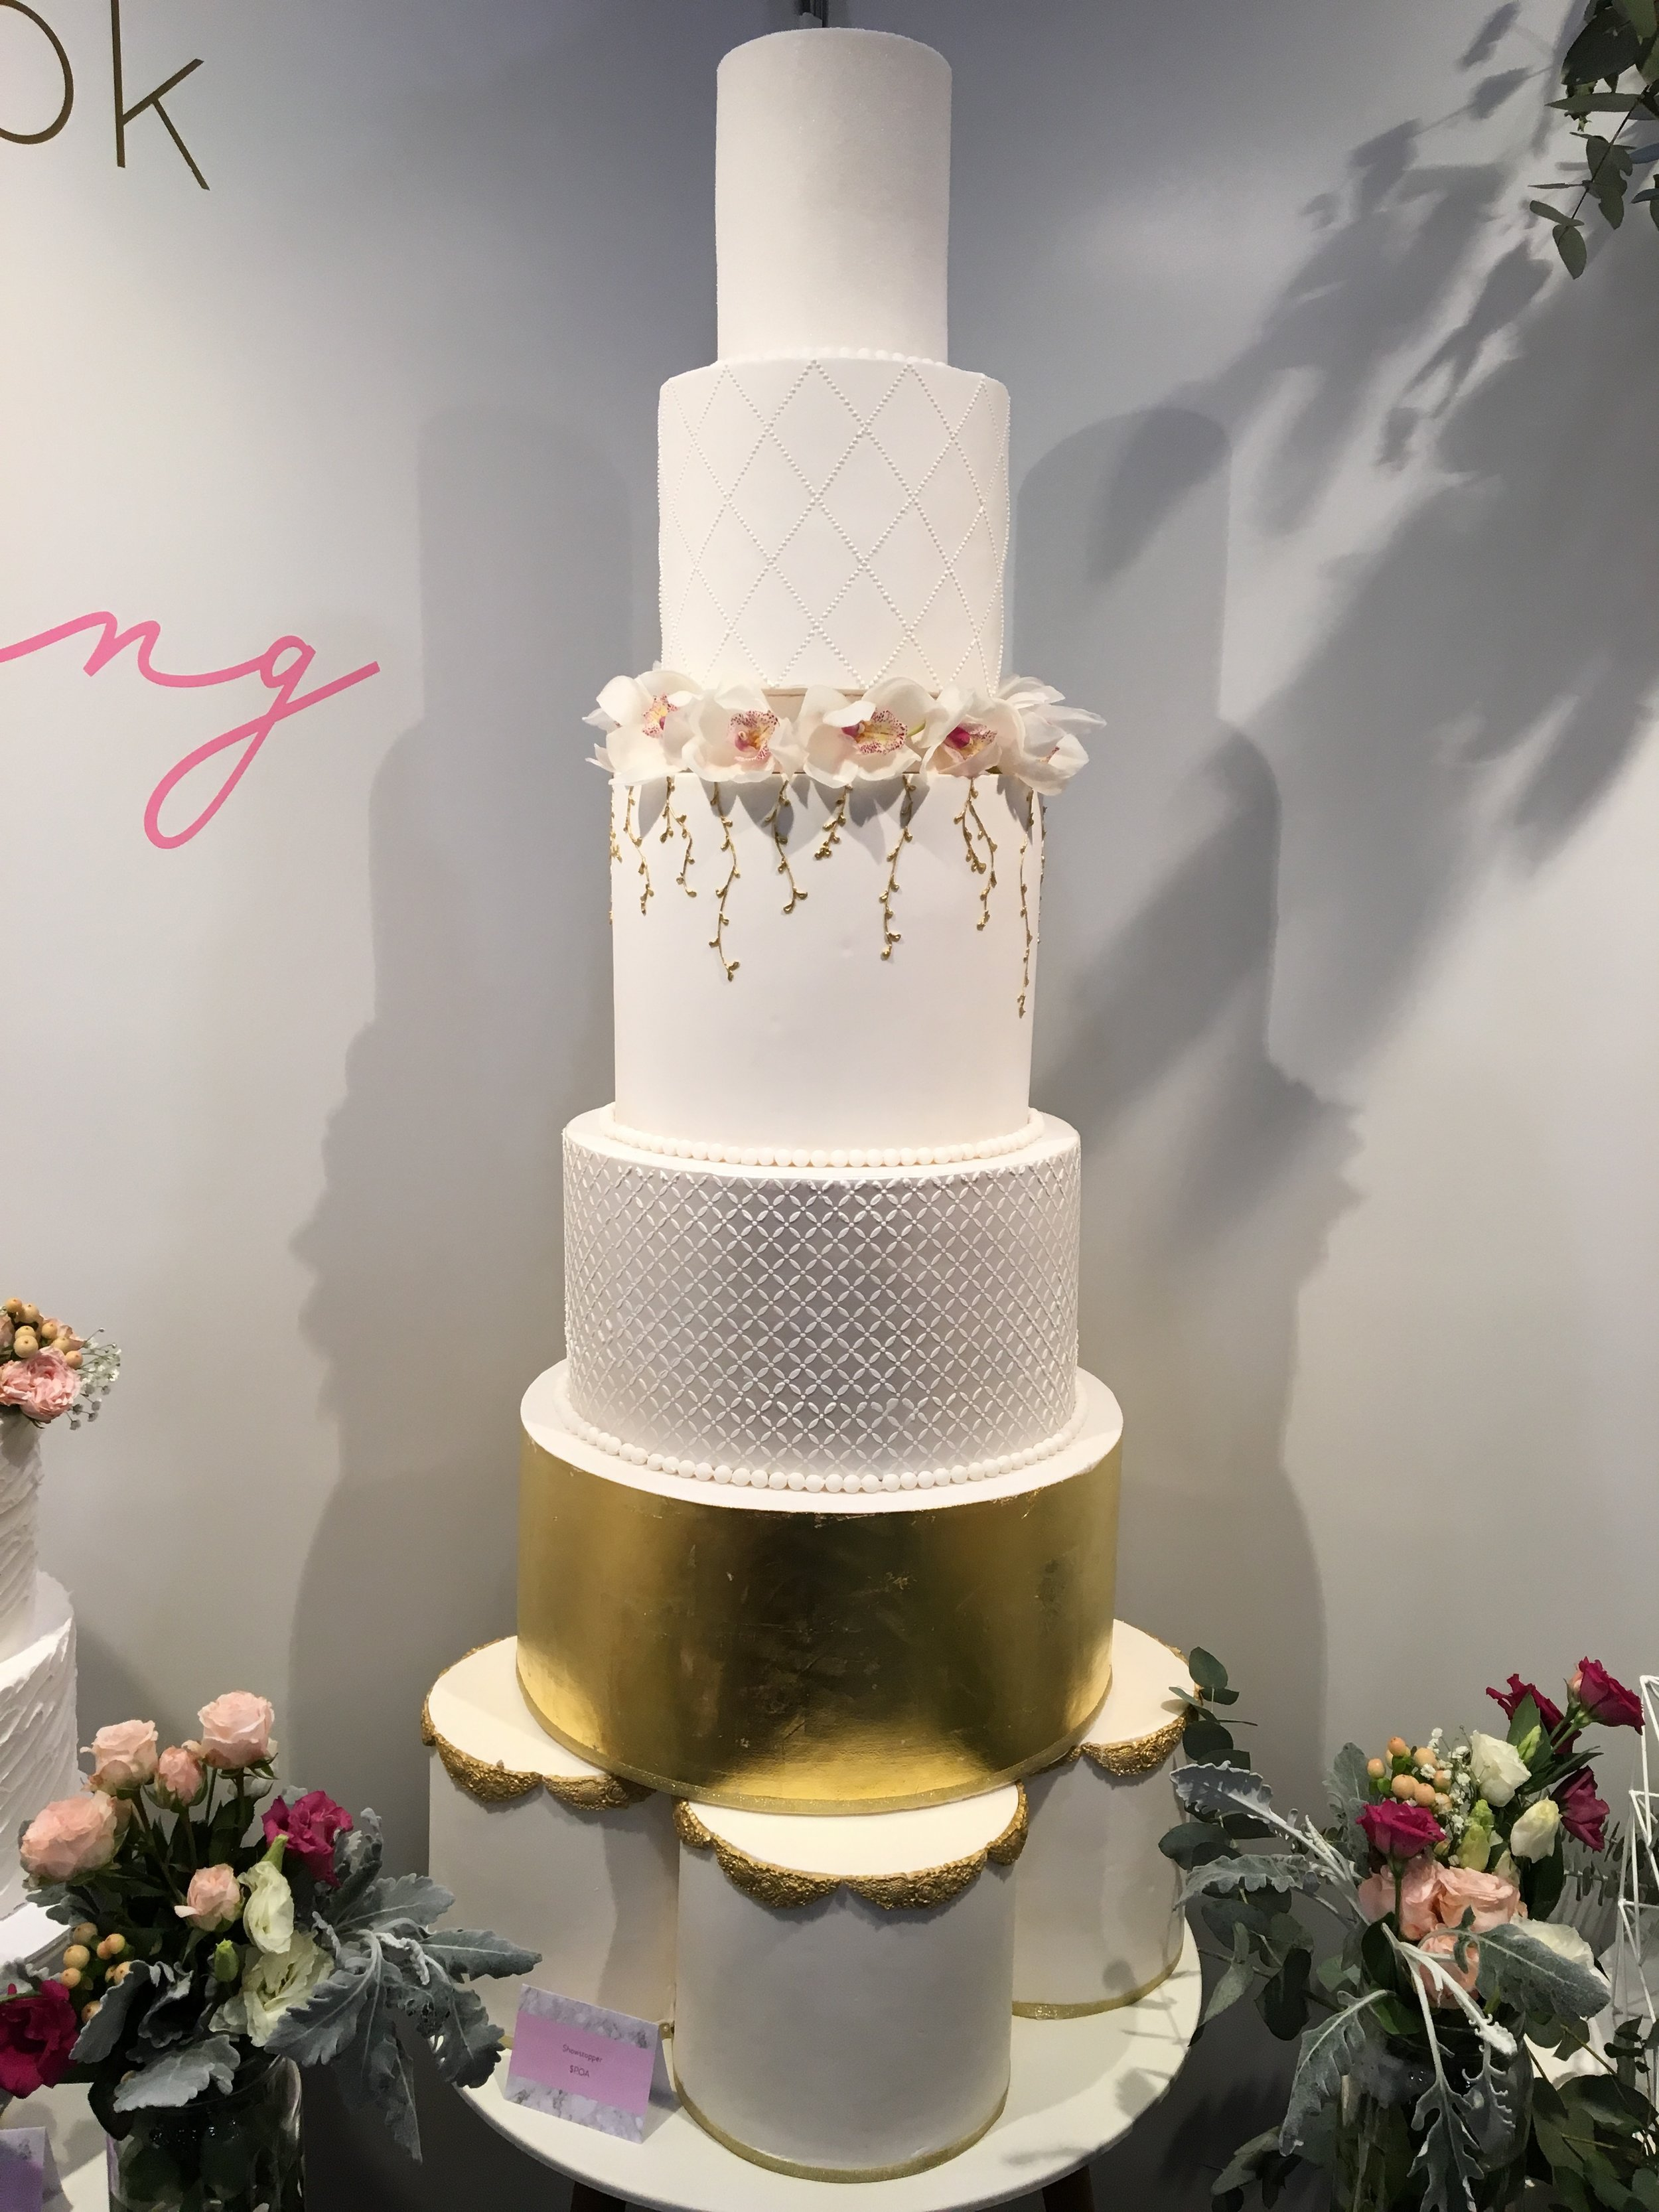 Gold & White Showstopper Wedding Cake with Flowers